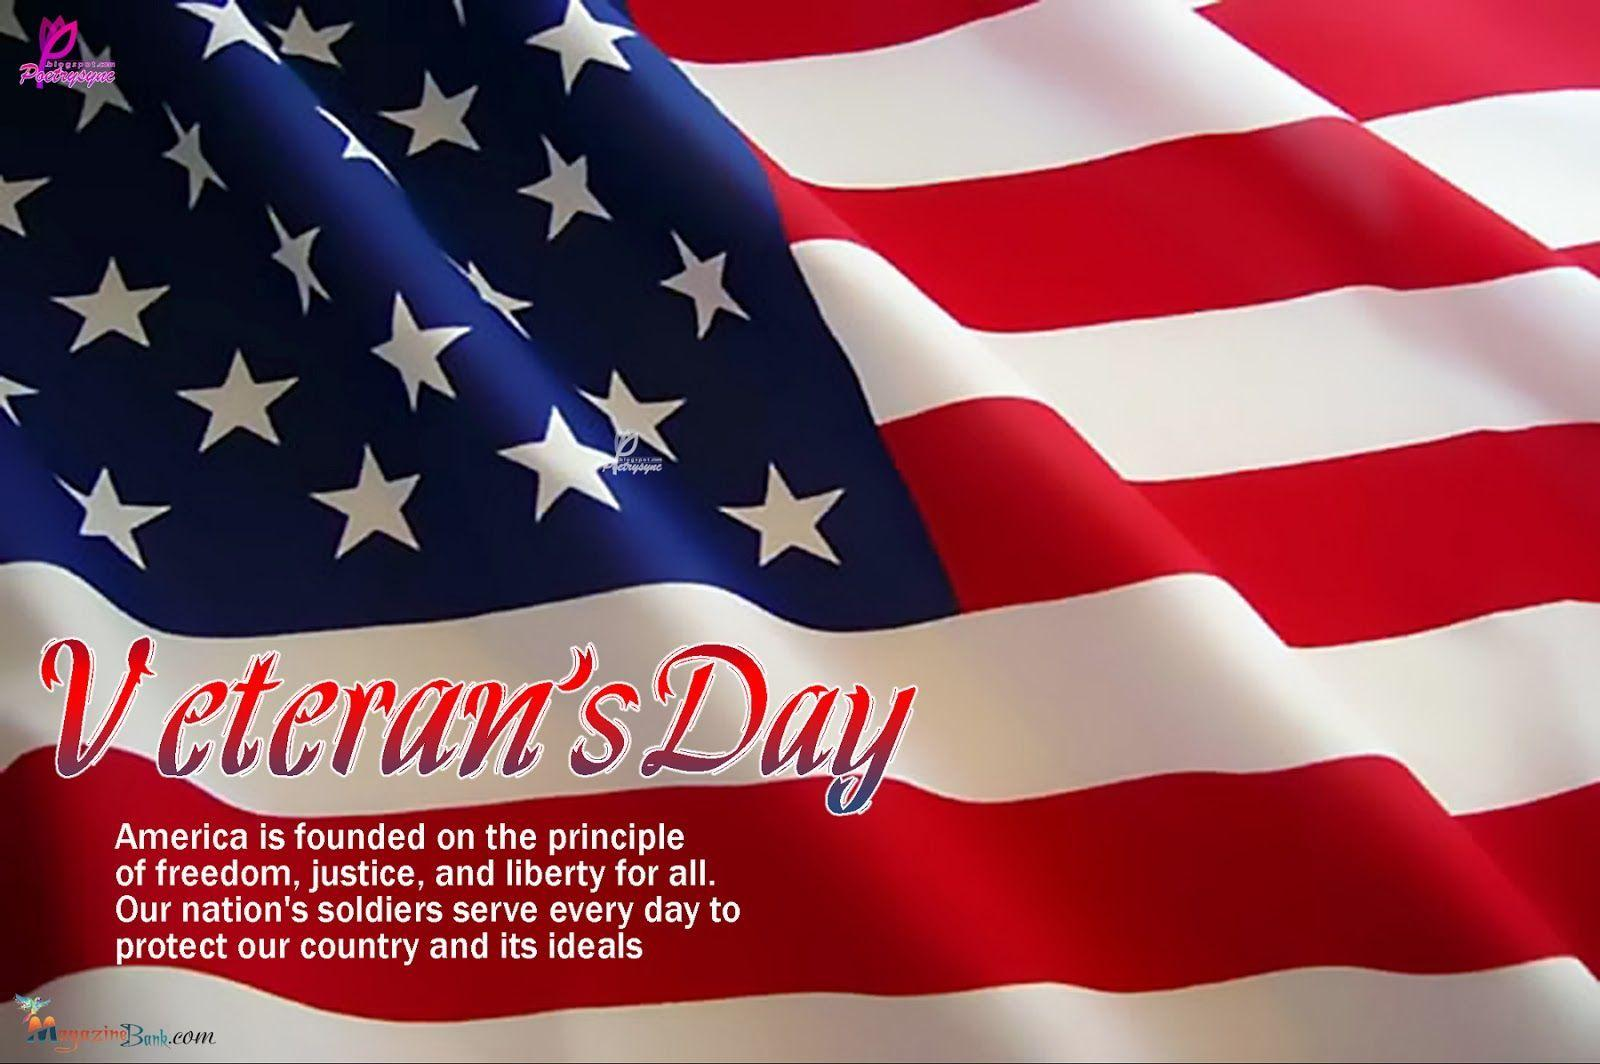 Happy Veterans Day 2014 Pictures, Images, Wallpaper, Photos ...